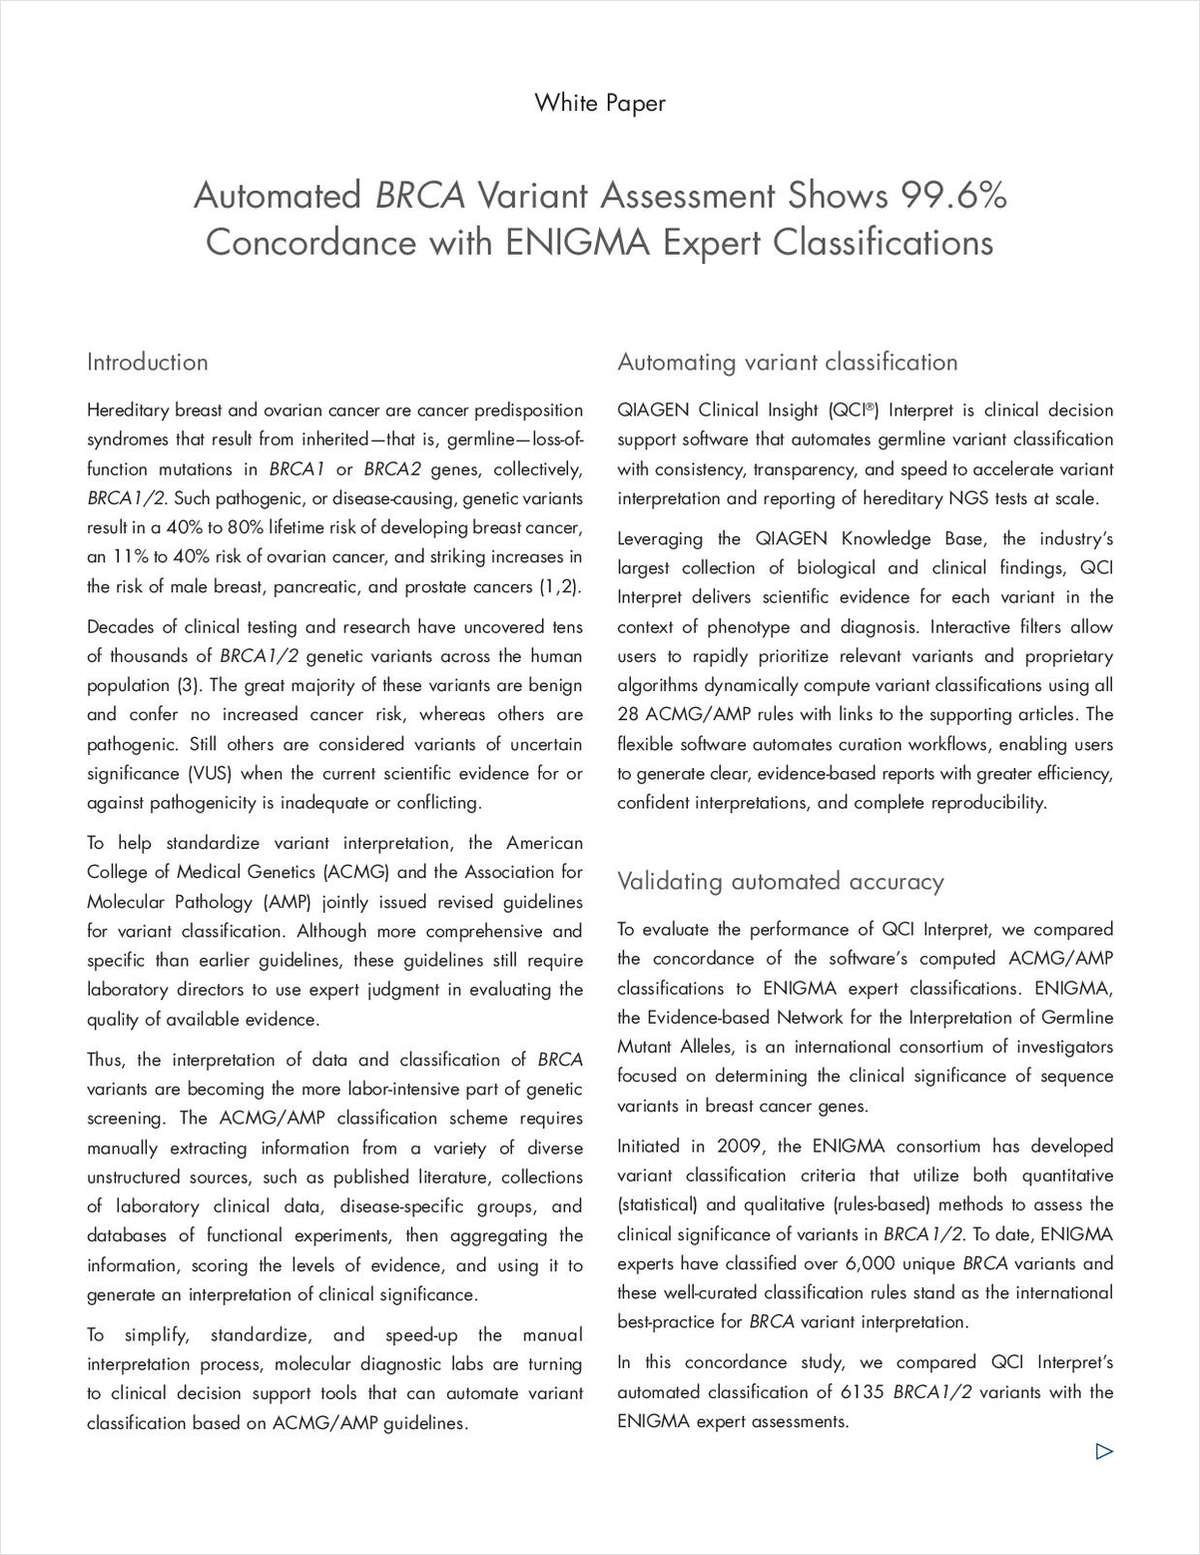 Automated BRCA Variant Assessment Shows 99.6% Concordance with ENIGMA Expert Classifications